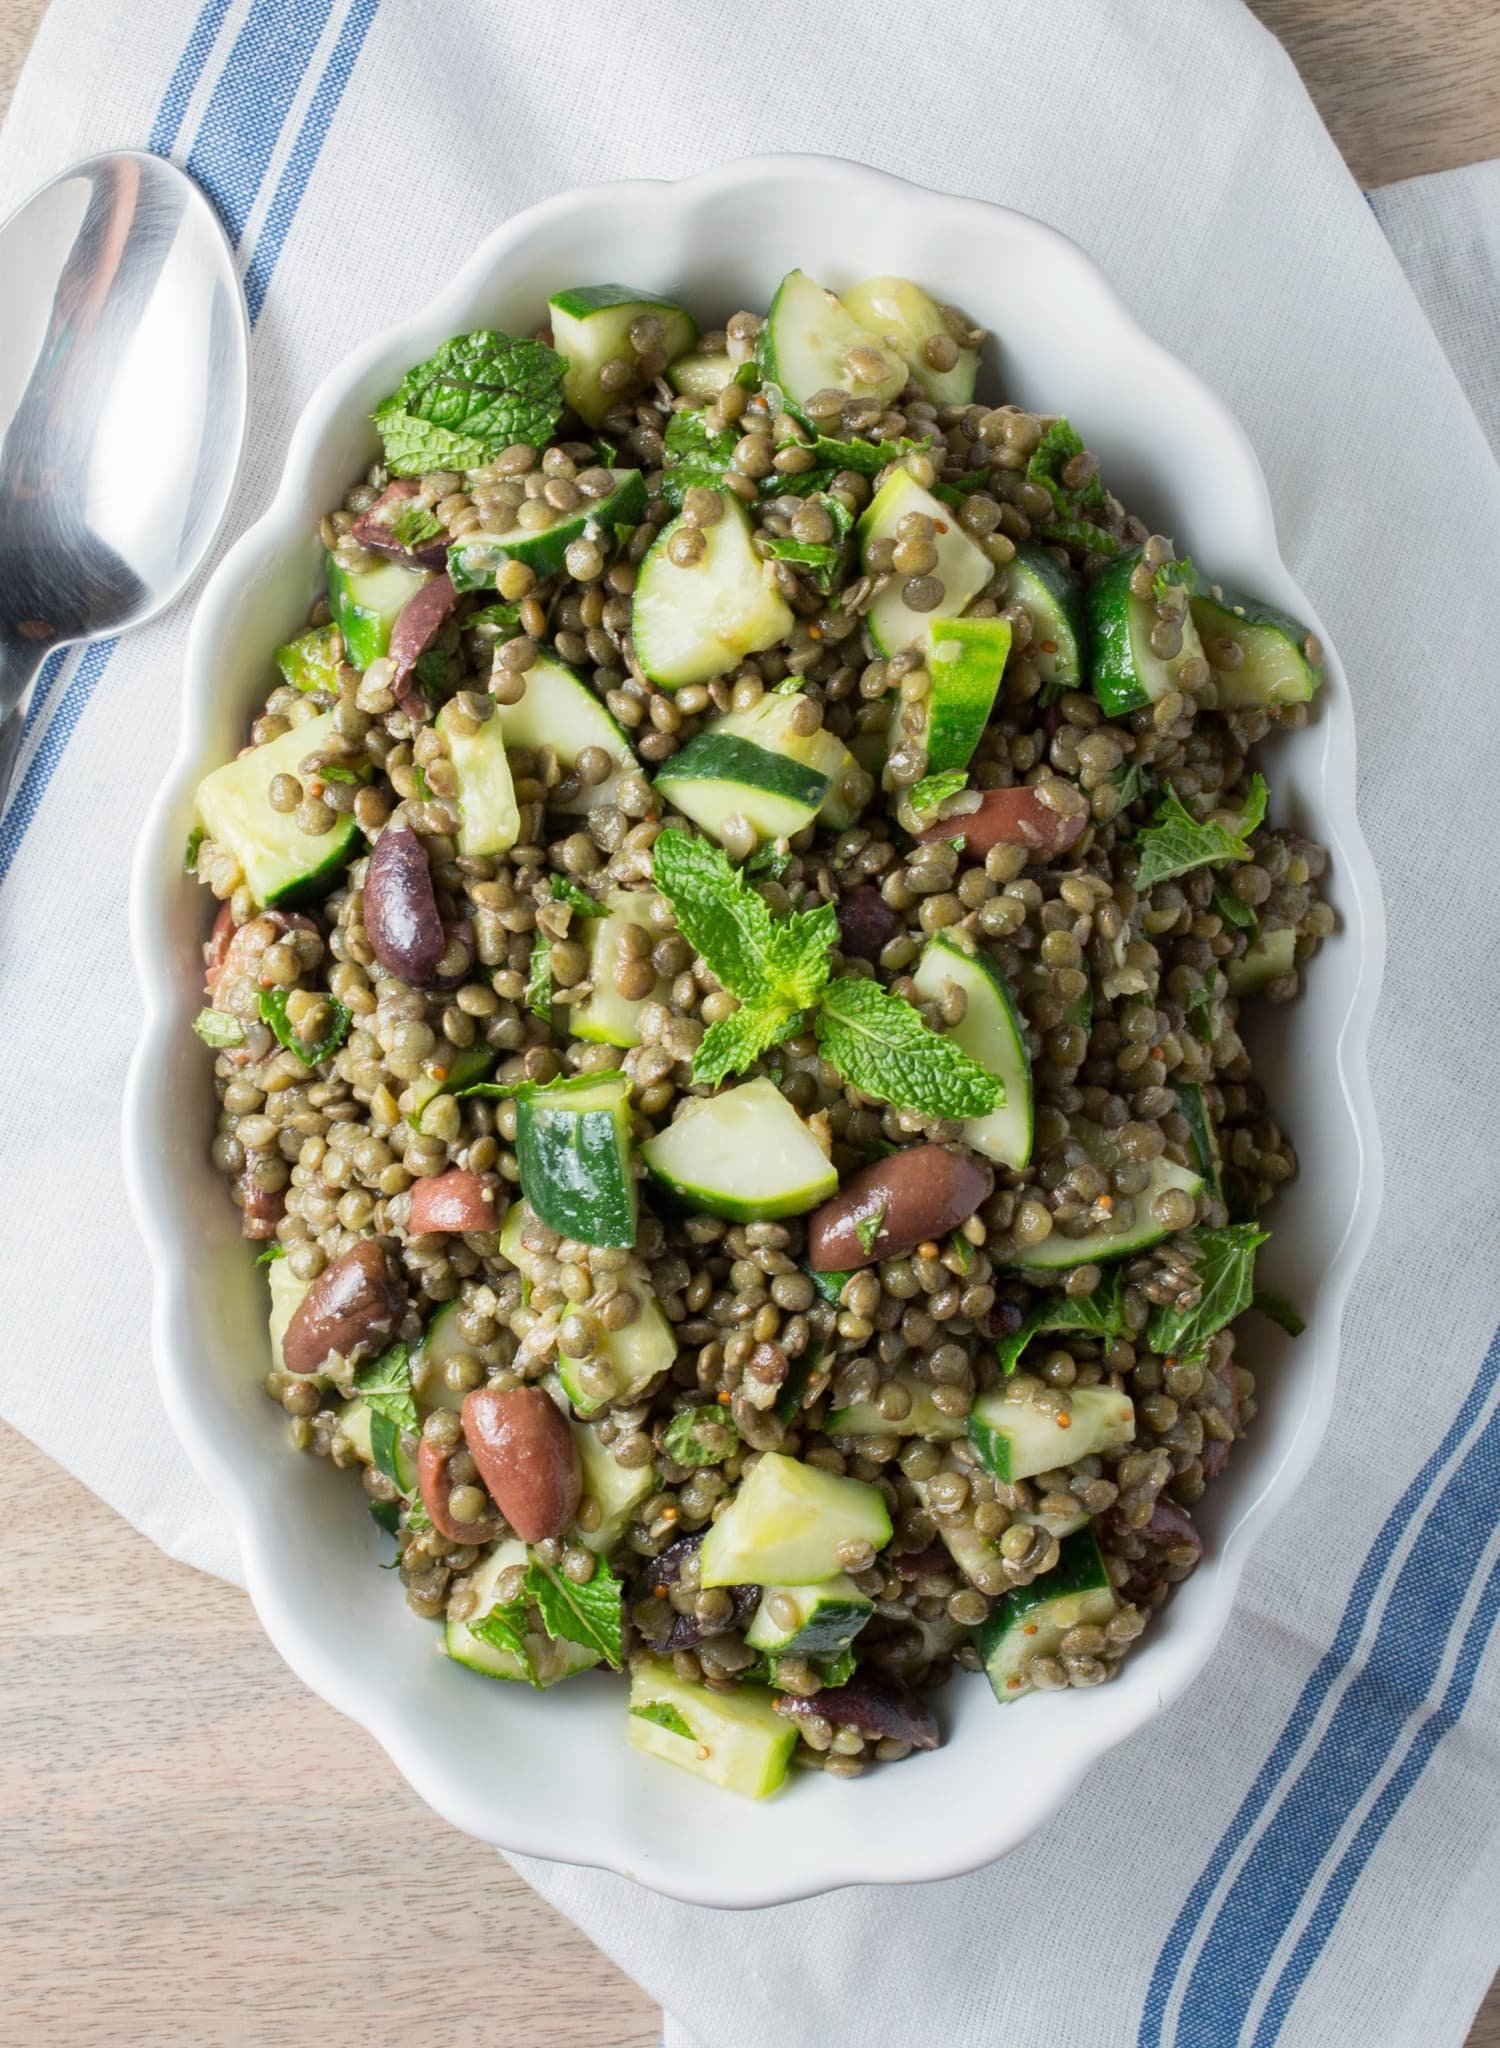 This Easy Cold Lentil Salad Is One of Our Best Make-Ahead Meals